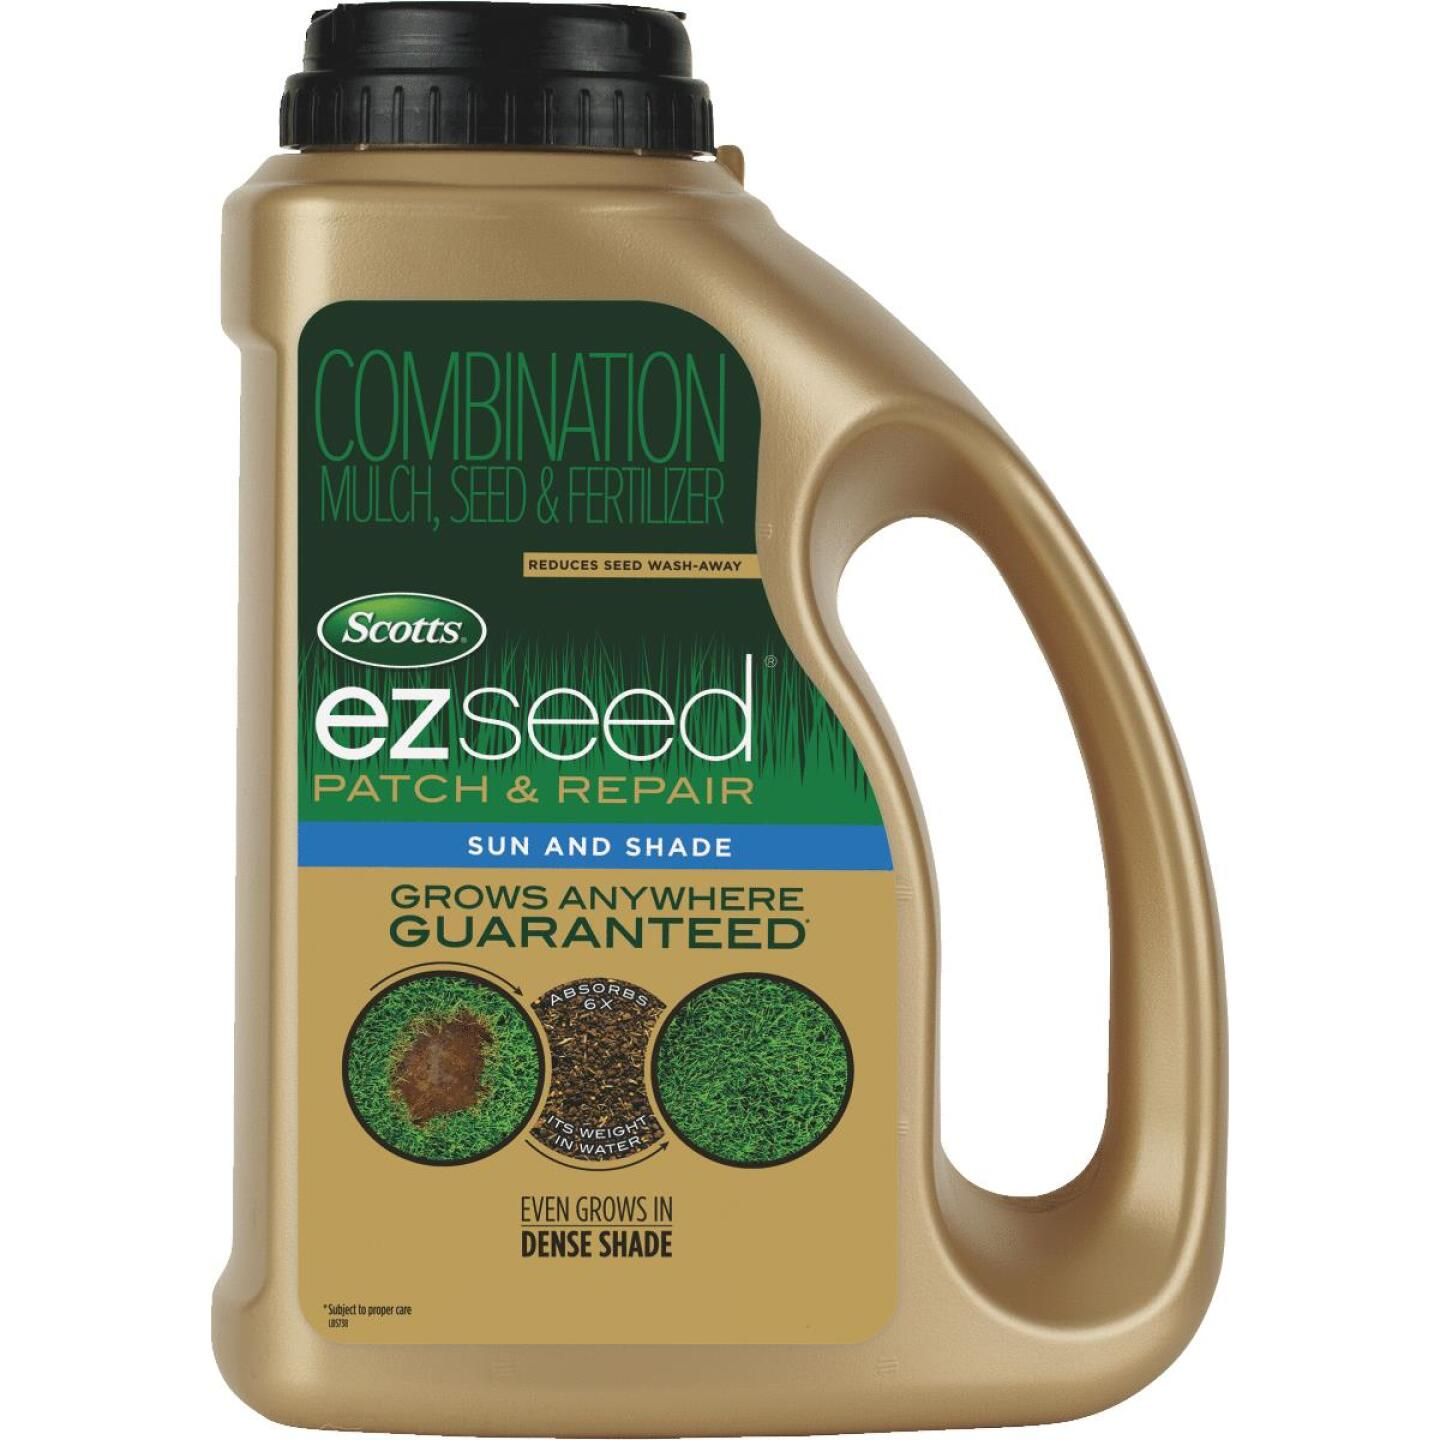 Scotts eZ Seed 3.75 Lb. 85 Sq. Ft. Coverage Sun & Shade Grass Patch & Repair Image 1